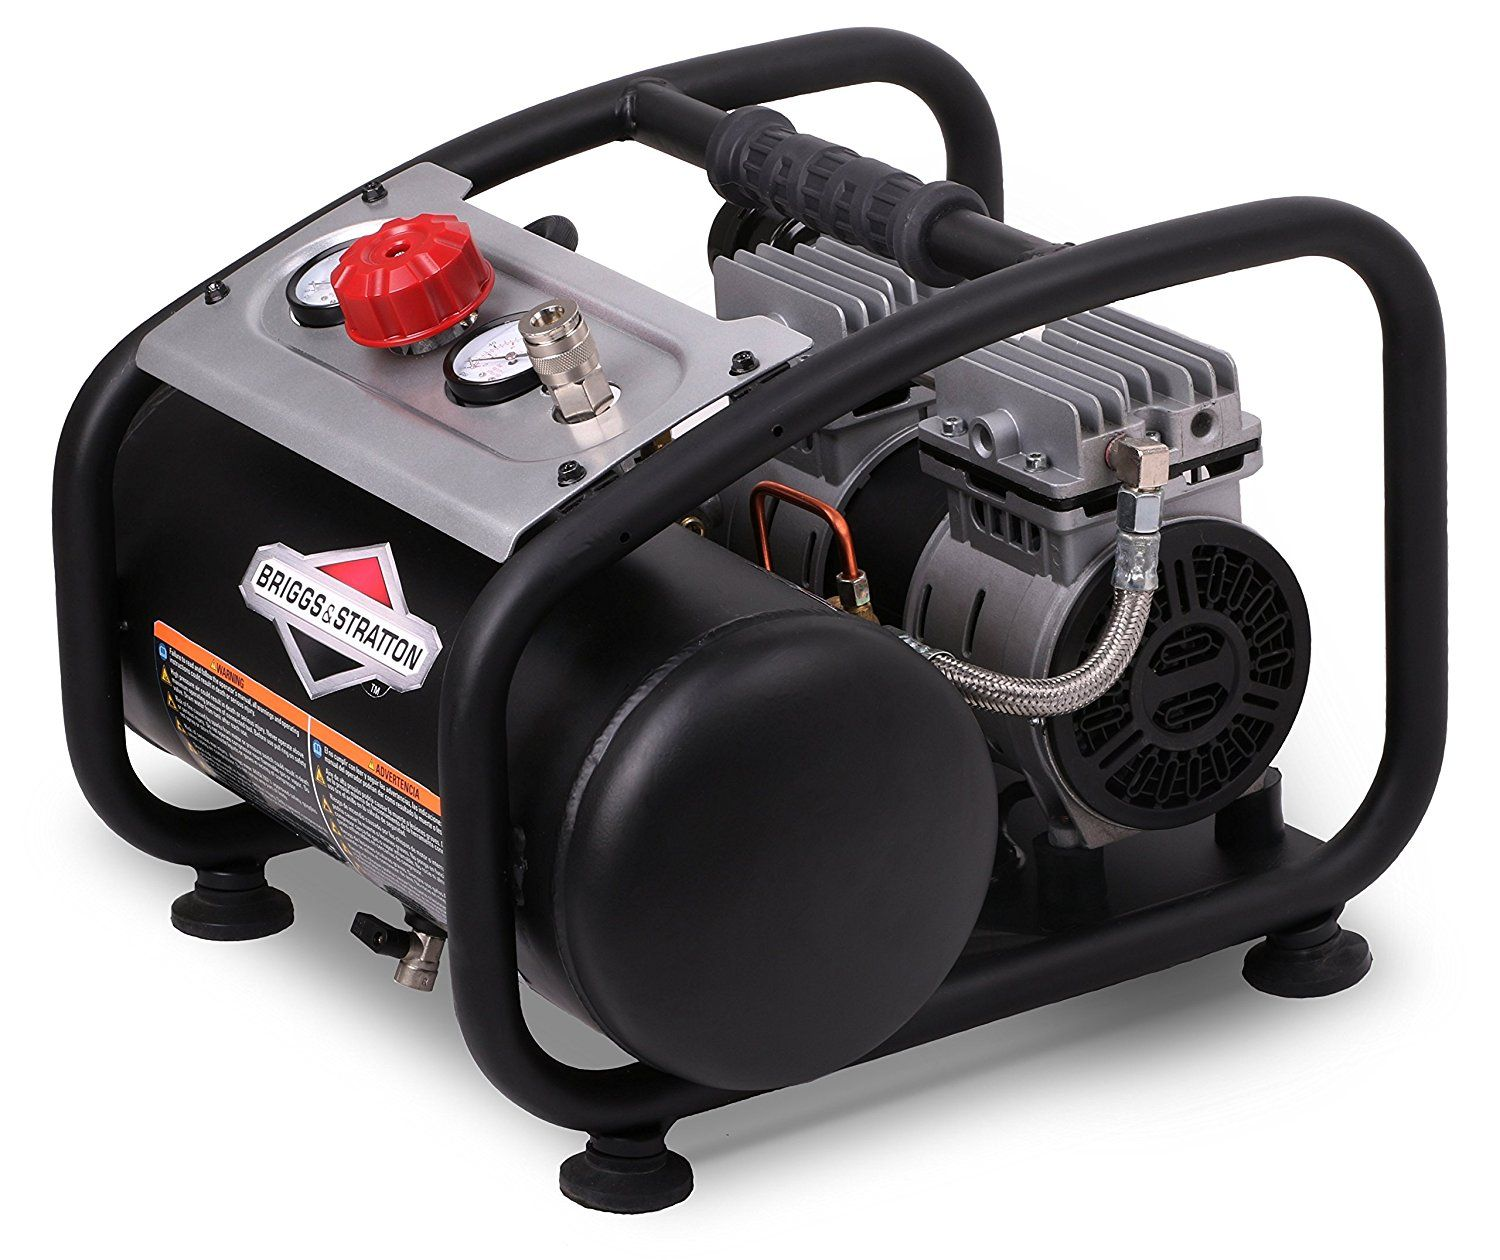 10 Powerful & Quiet Air Compressor Reviews Level Up Your